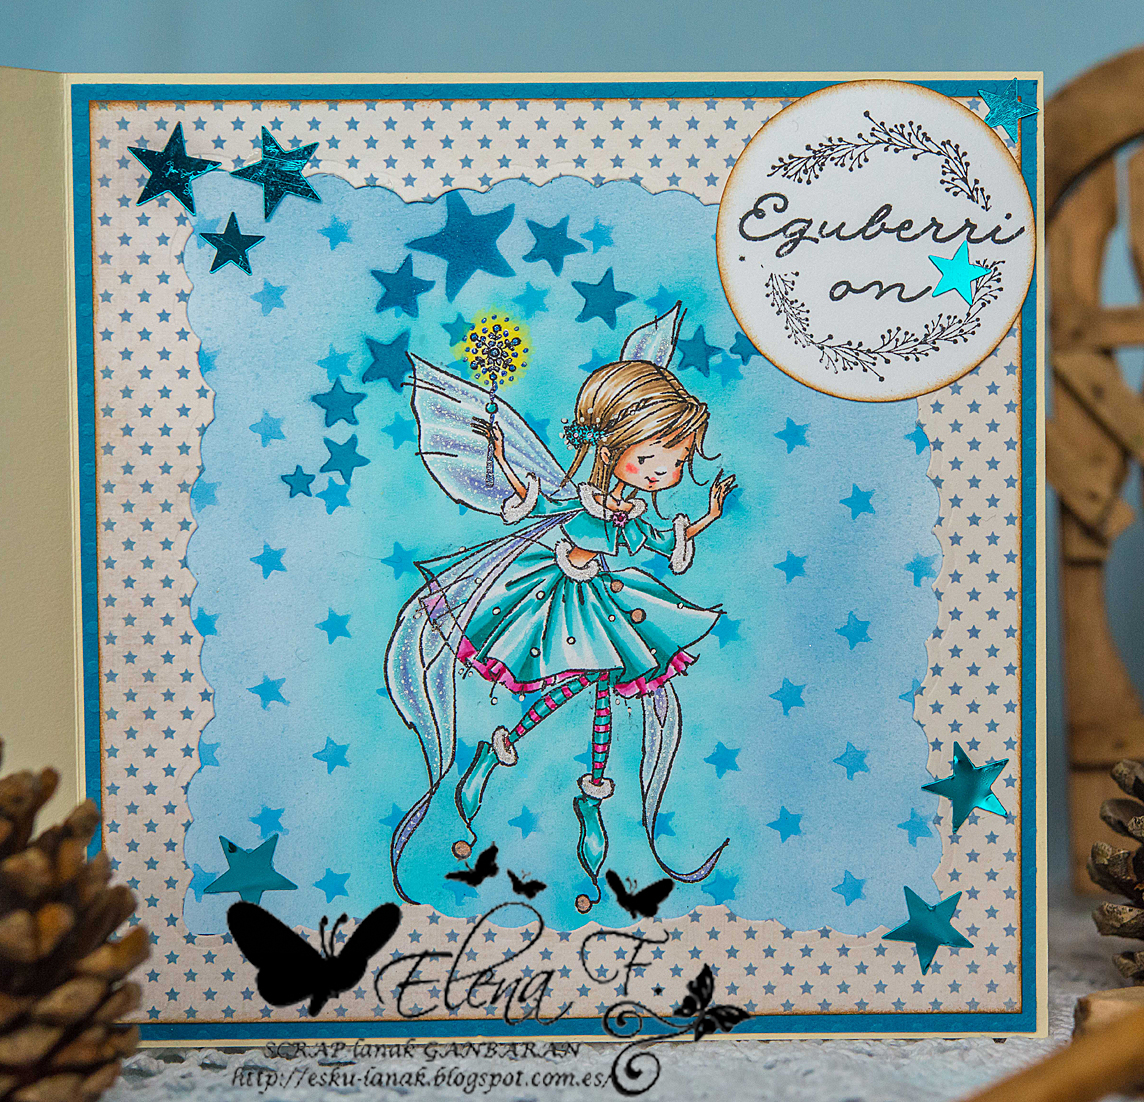 SCRAP-lanak GANBARAN: Funky Kits mixed media card copic airbrush ...